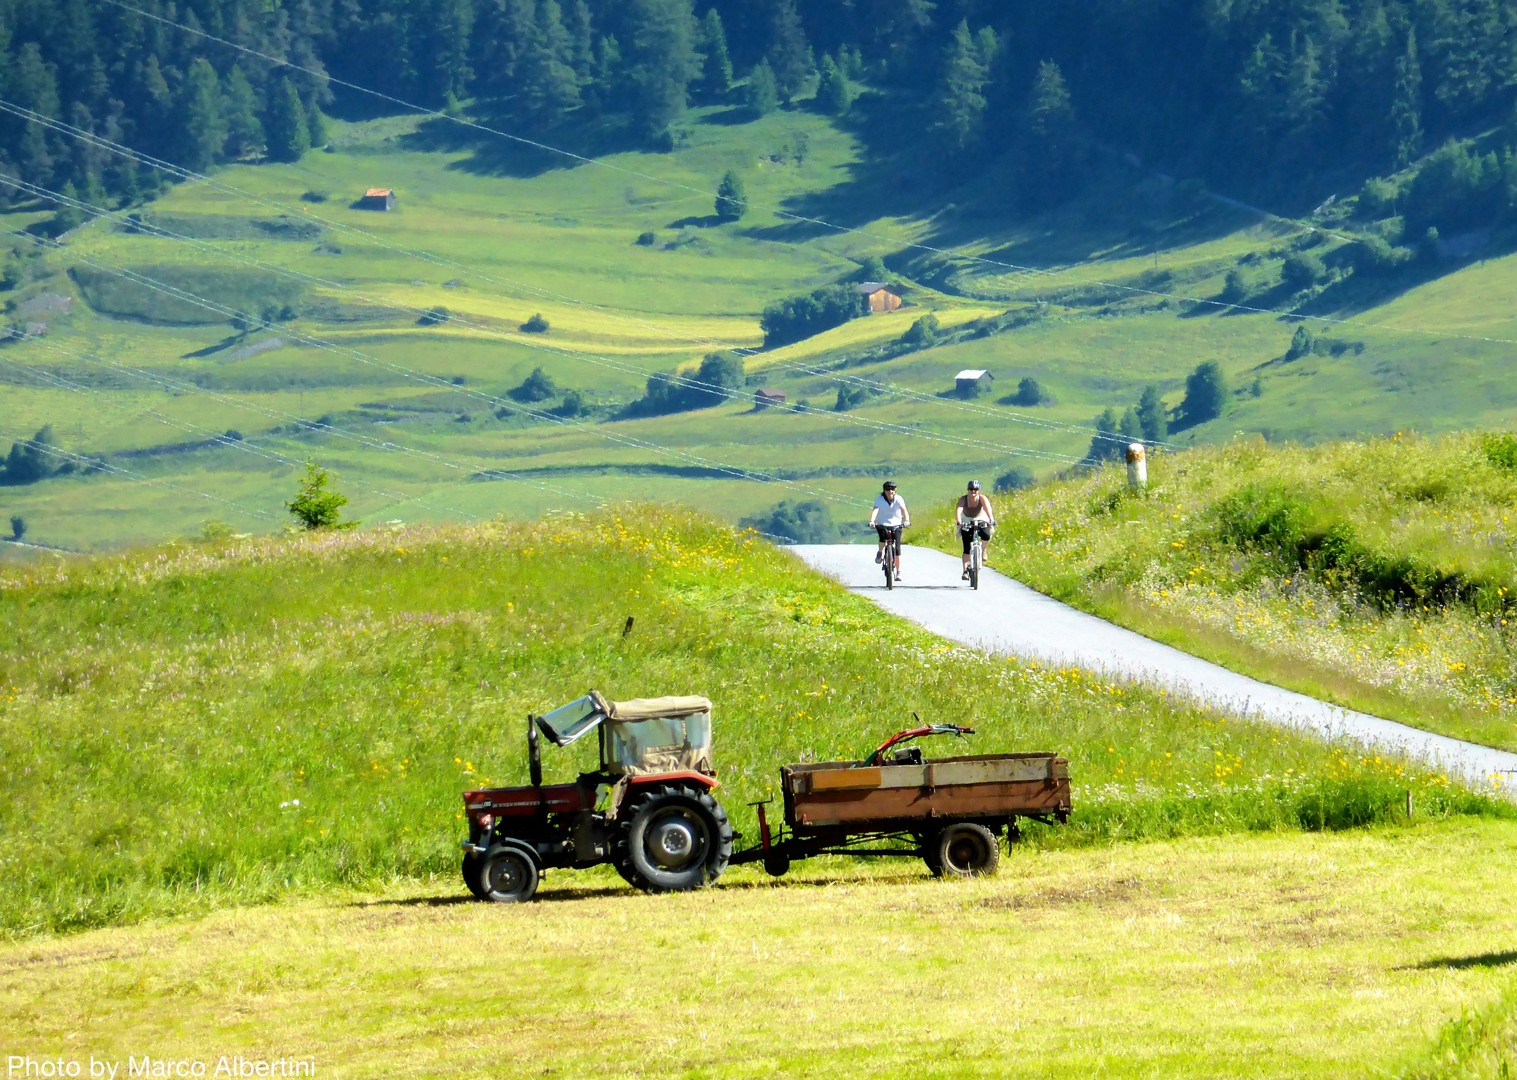 picturesque-scenery-self-guided-cycling-adventure.jpg - Italy - La Via Claudia - Self-Guided Leisure Cycling Holiday - Leisure Cycling